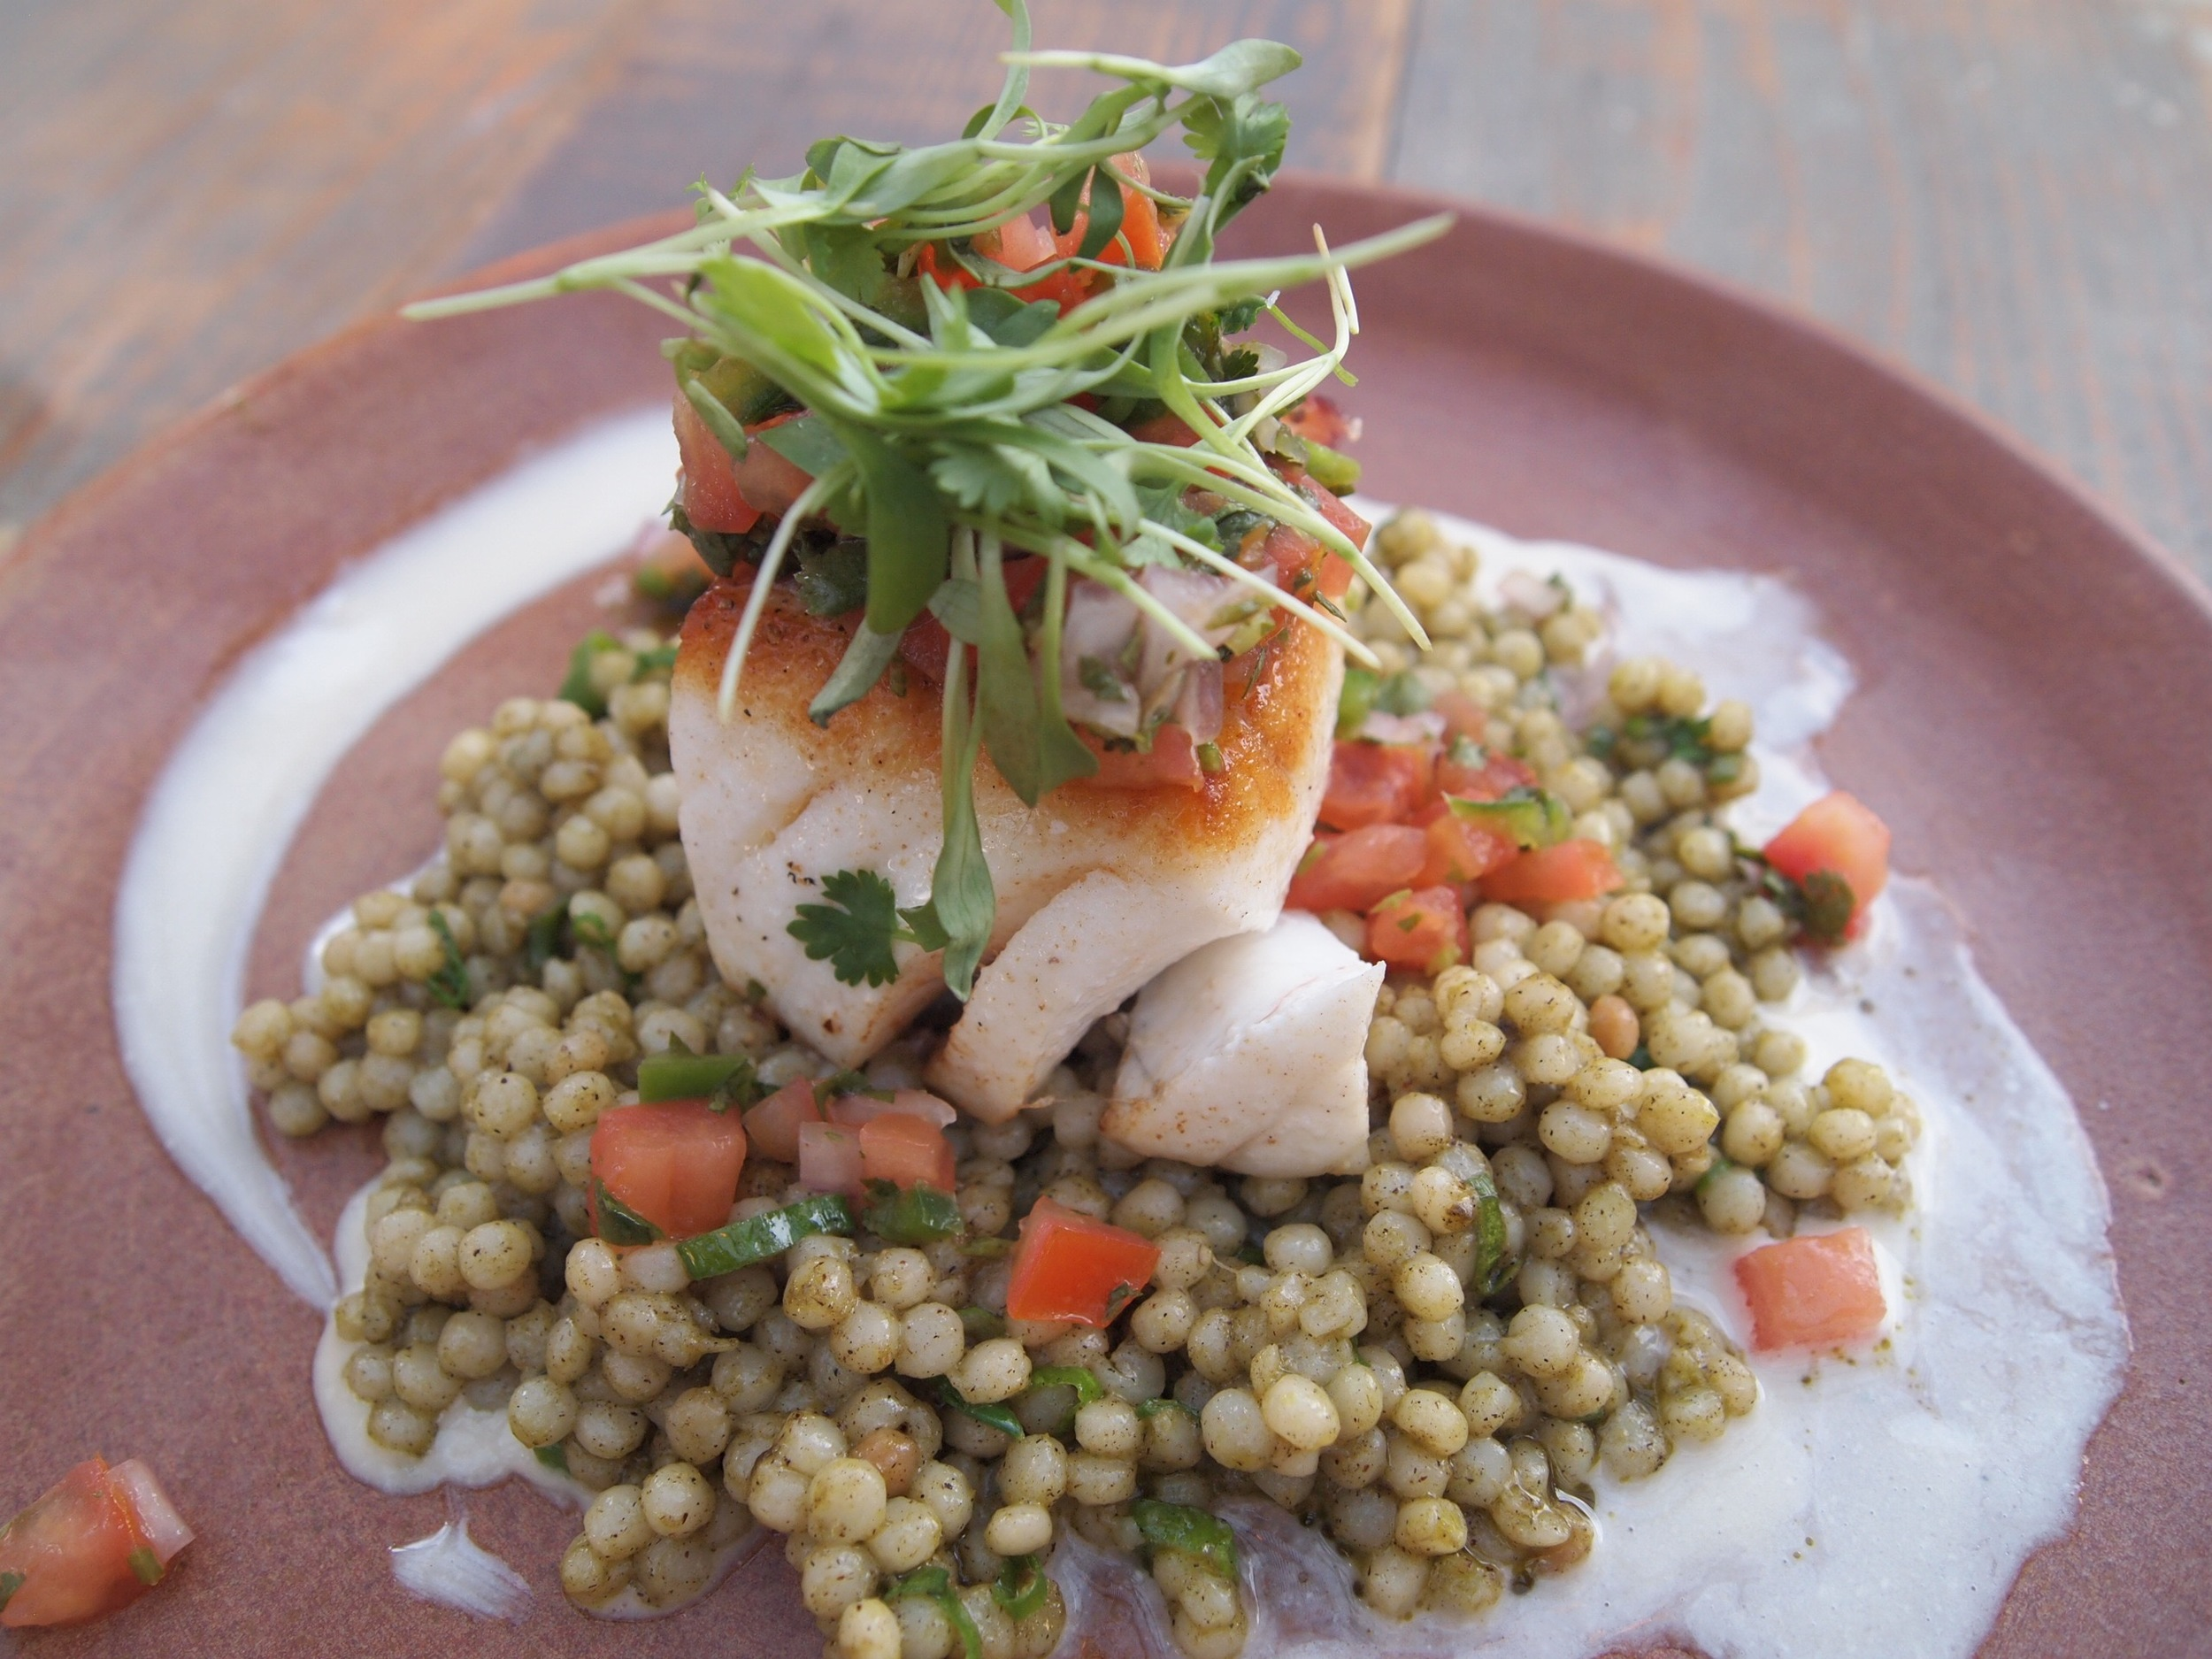 Halibut with Israeli couscous at Outpost, a farm-to-table eatery in The Goodland.